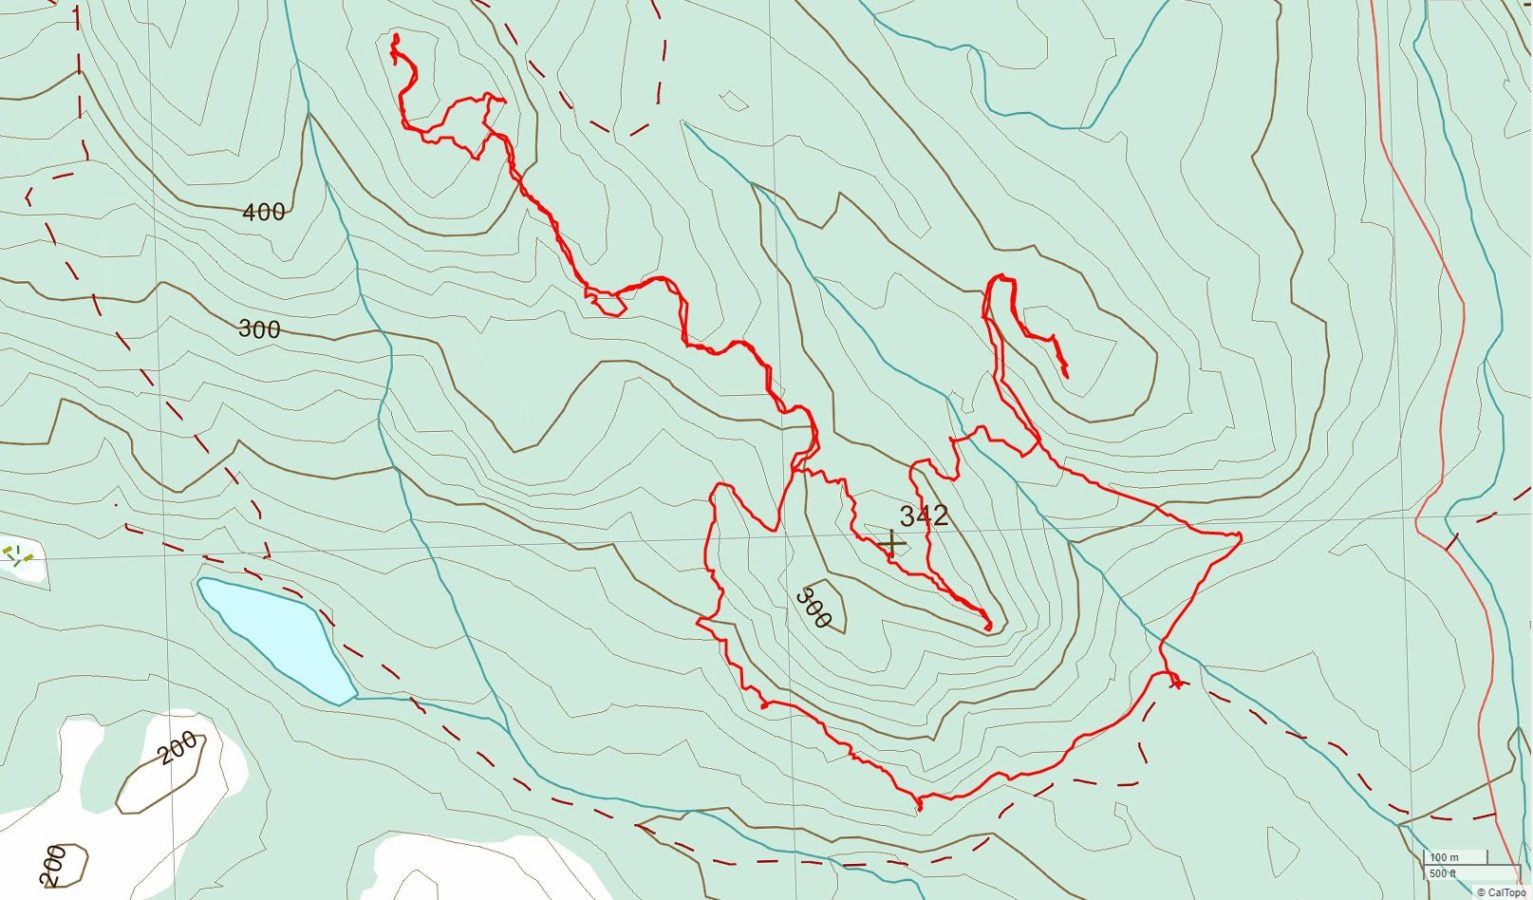 Beech's, N. Chinese & S. Chinese Mtns. - USGS Topo Map Track